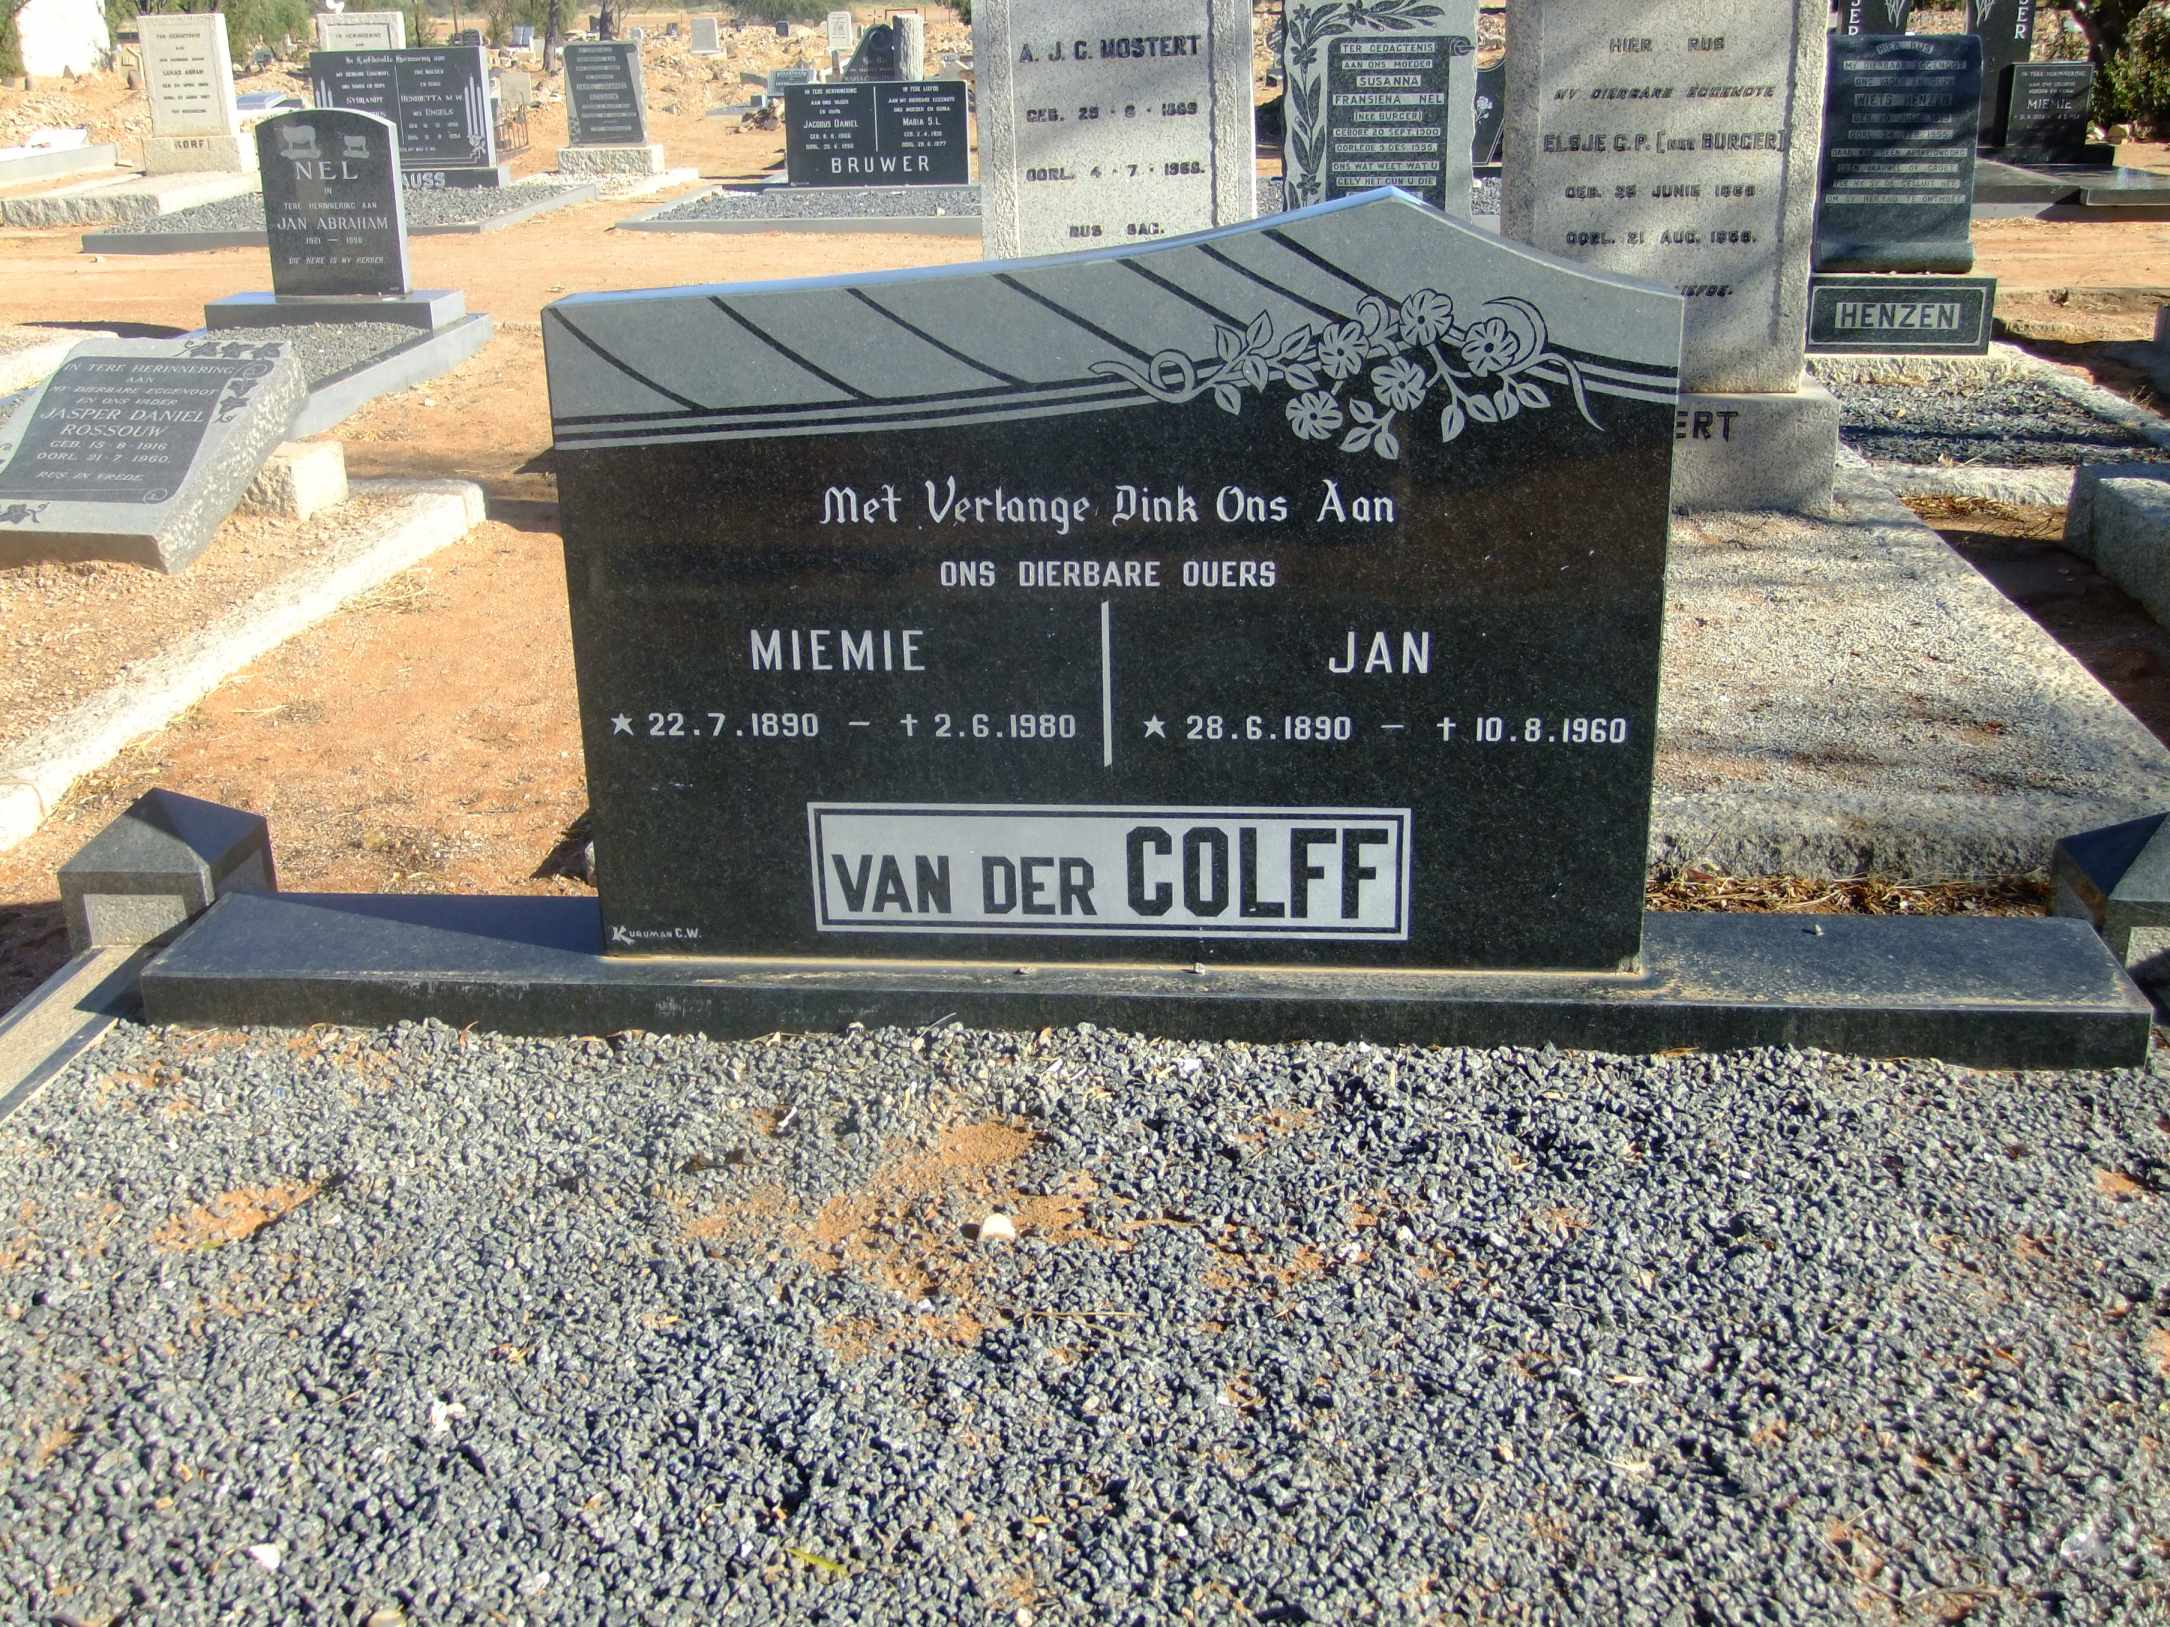 Van der Colff, Mimie born 22 July 1890 died 02 June 1980 and Jan born 28 June 1890 died 10 August 1960